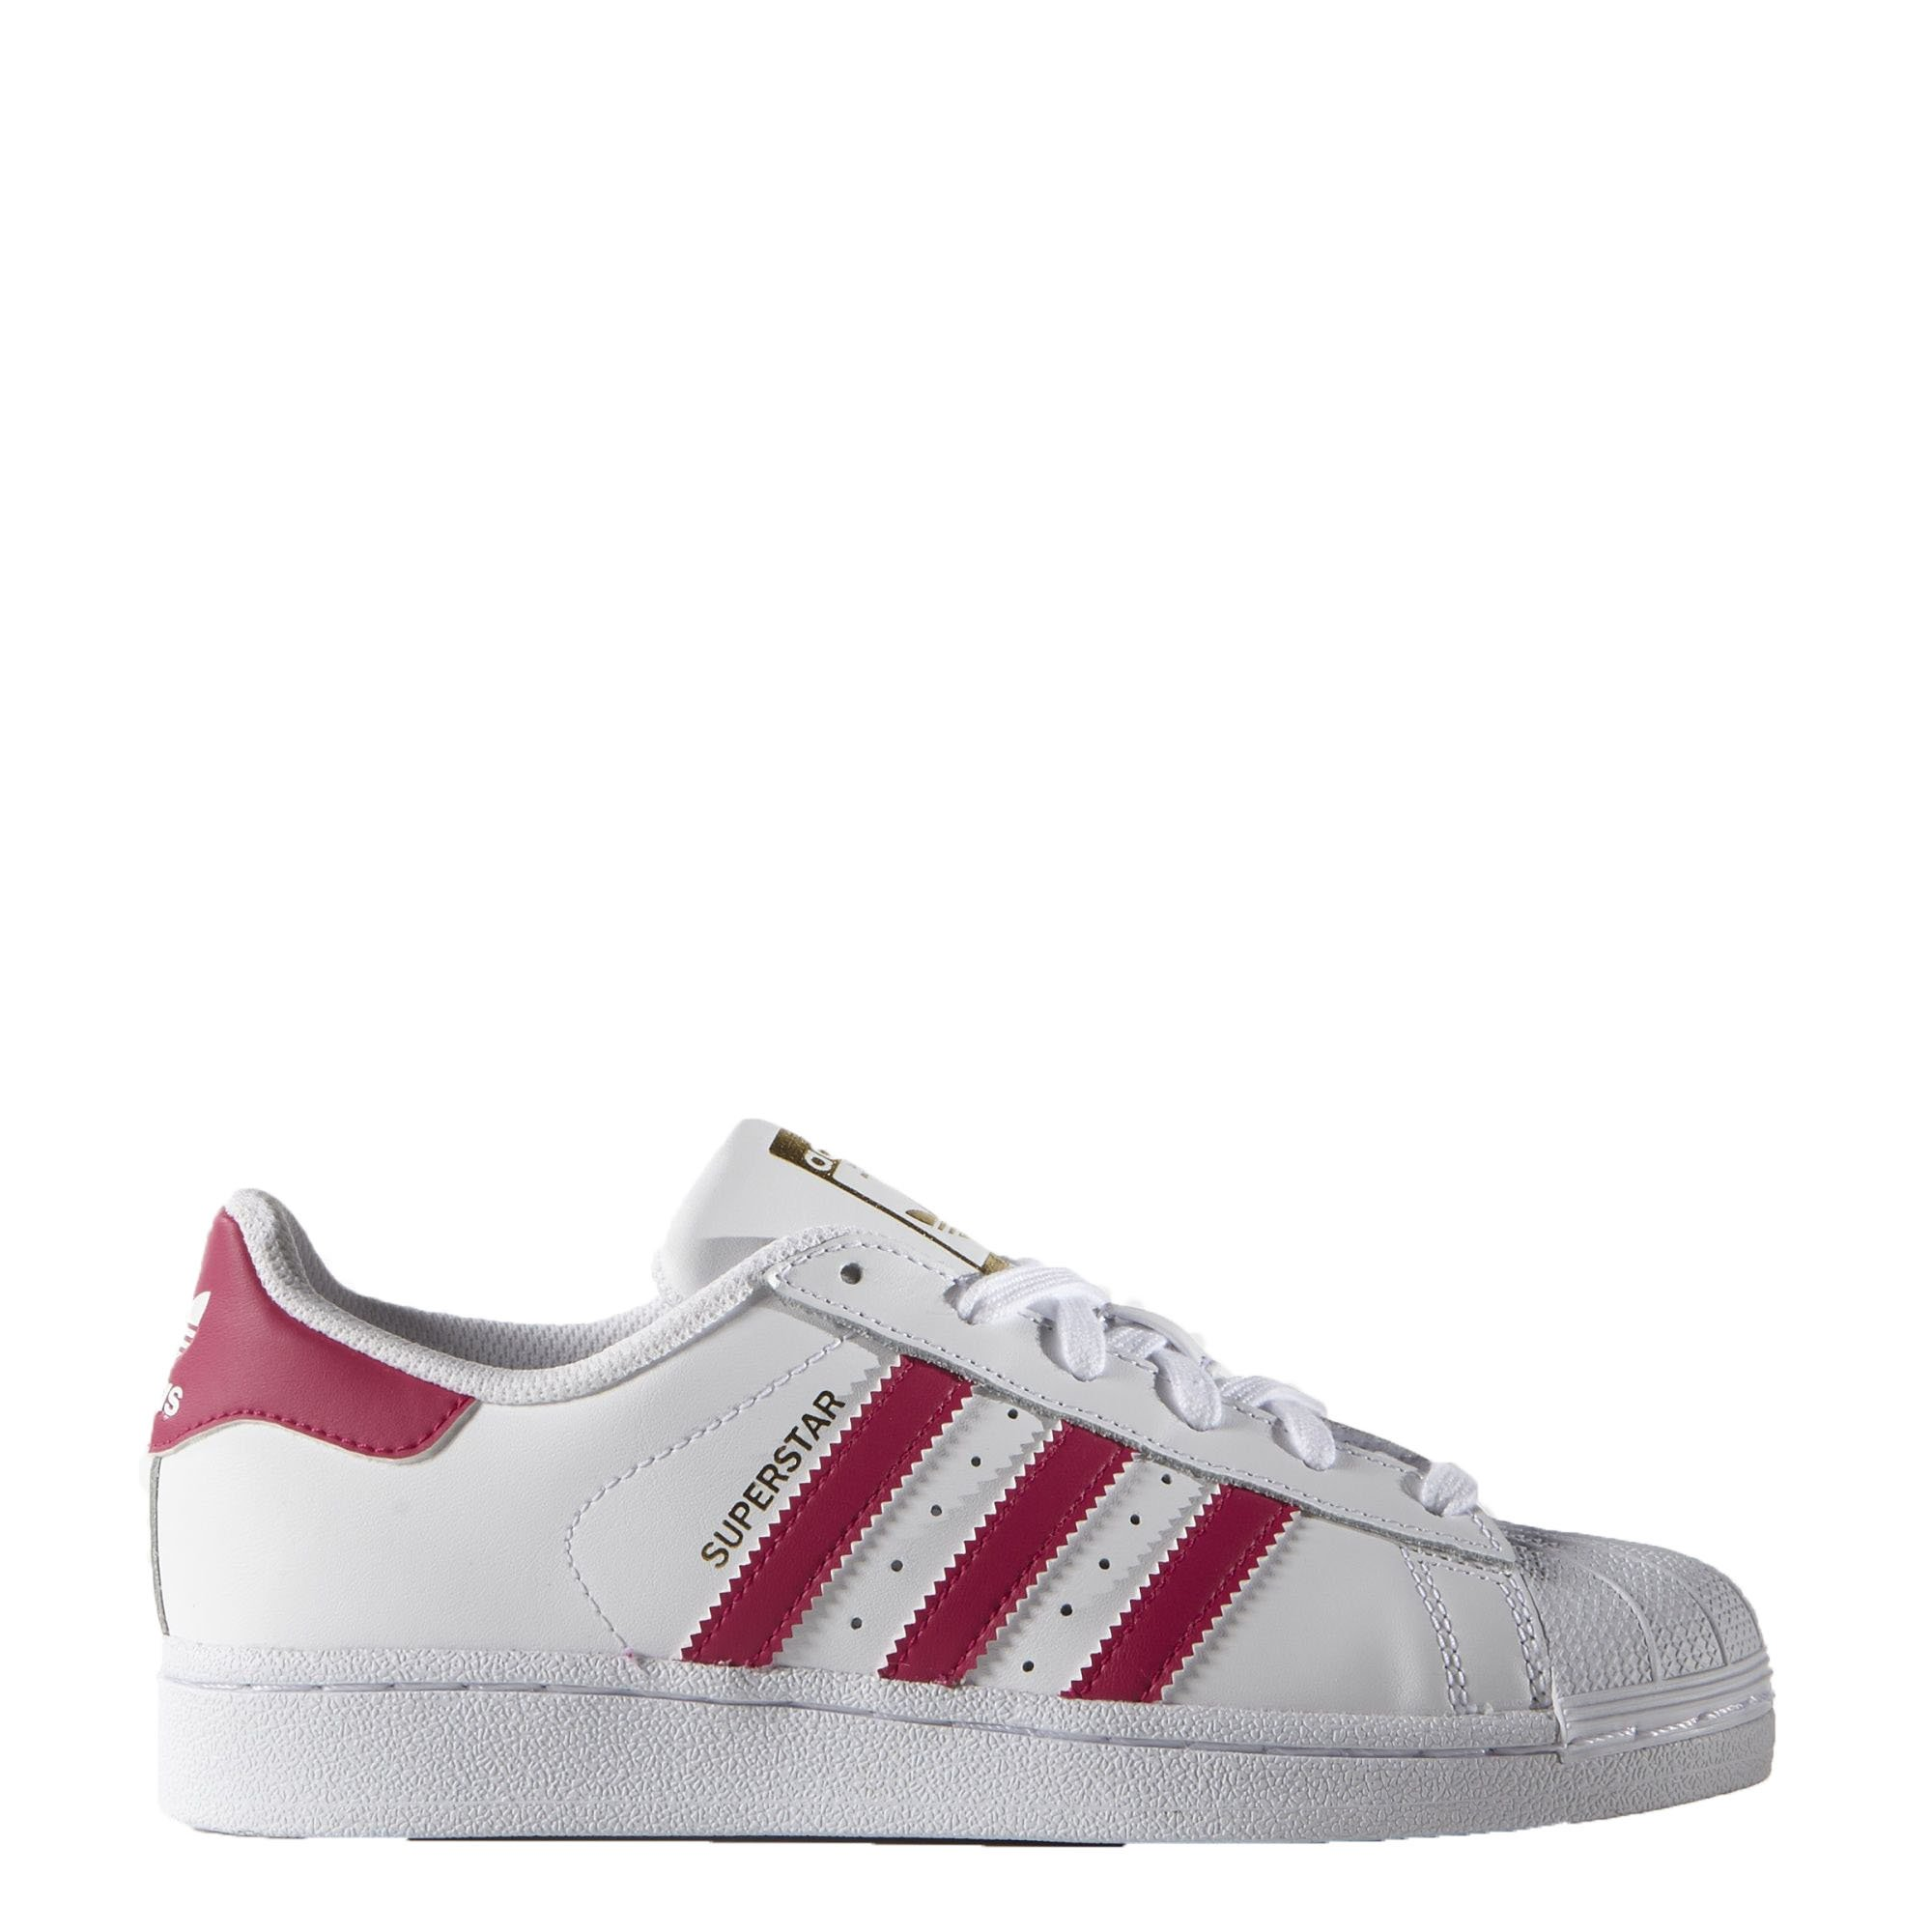 sports shoes bddbe db664 ADIDAS SUPERSTAR K - gallery 0 ...